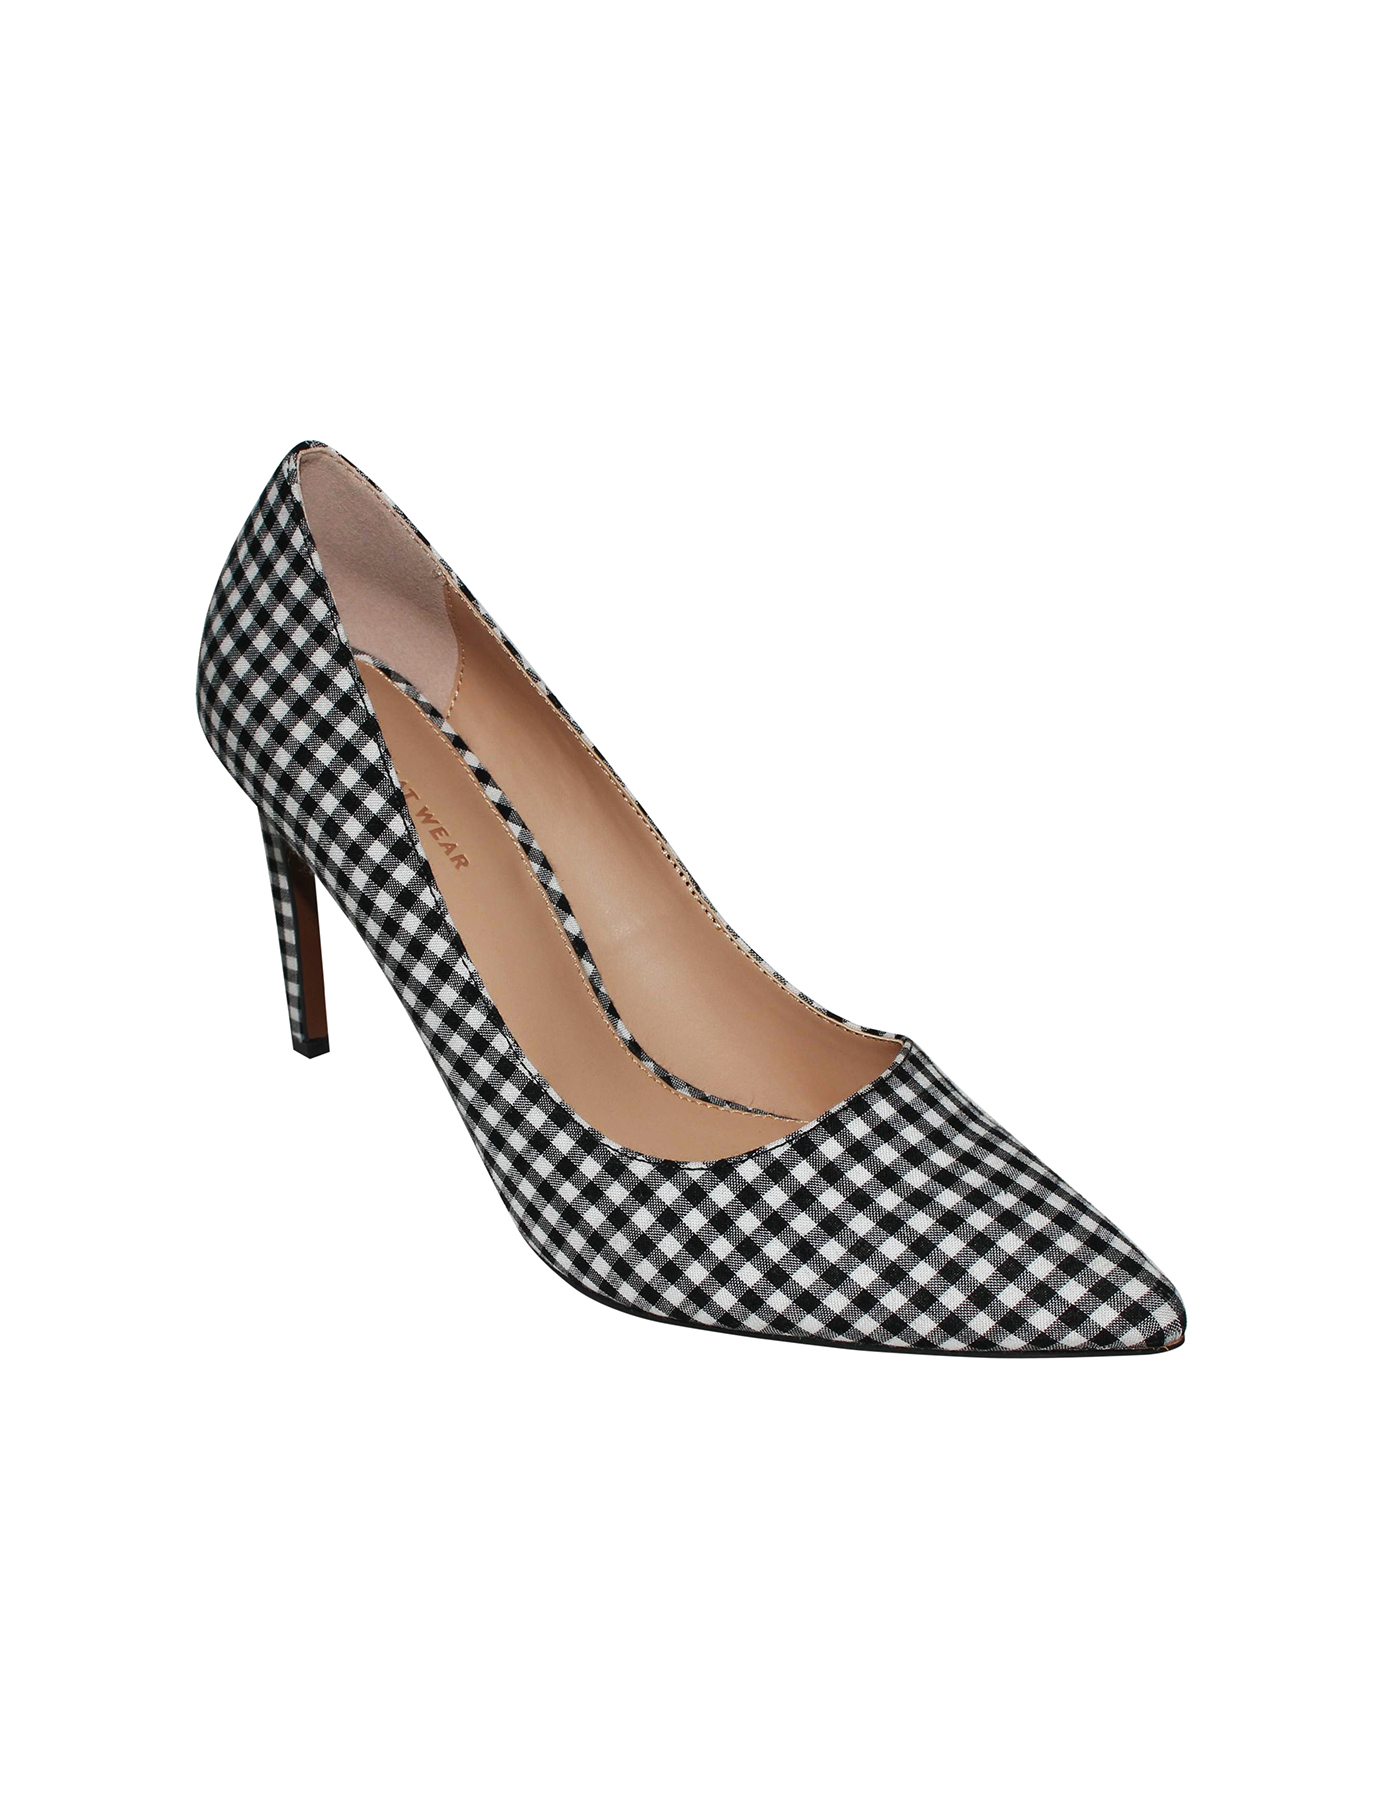 Target x Who What Wear Ally Printed Pumps